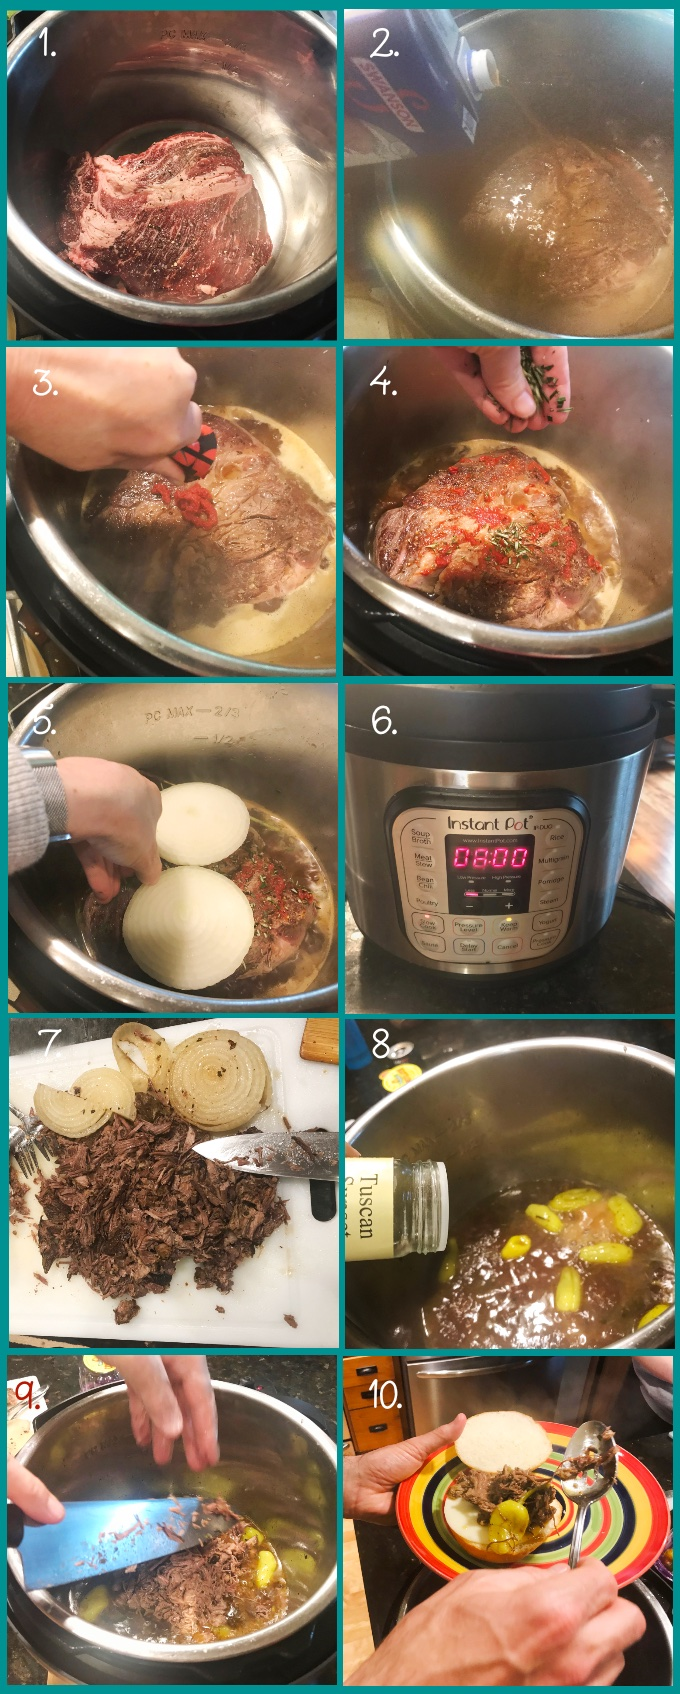 "Steps for preparing Instant Pot Roast Beef Sandwiches. 1. Set the Instant Pot to high saute; add 1 tbsp canola oil. Brown the chuck roast well on both sides. 2. Add broth, Maggi seasoning sauce, and seasoned rice vinegar. 3. Smear tomato paste over the top of the roast. 4. Sprinkle with rosemary (add the stem too!). 5. Add onion slices on top. 6. Lid the Instant Pot and set to slow-cook for 8 hours (lowest setting). 7. After 8 hours, remove the solids with a skimmer. Discard rosemary stem. Remove the fat from the roast and discard. Pull and chop the roast. Reserve the onions for serving, if you'd like. 8. Cancel the slow-cook function and press ""Saute"": set to high until the liquid comes to a simmer. (You can degrease the liquid if you like). Add the drained pepperoncini peppers (you can stem and seed them). Also add your favorite Italian seasoning mix. When the liquid reaches a simmer, reduce the saute to medium (using the - button). Add the meat back to the pot and simmer 10 minutes. 10. Assemble sandwiches and serve."